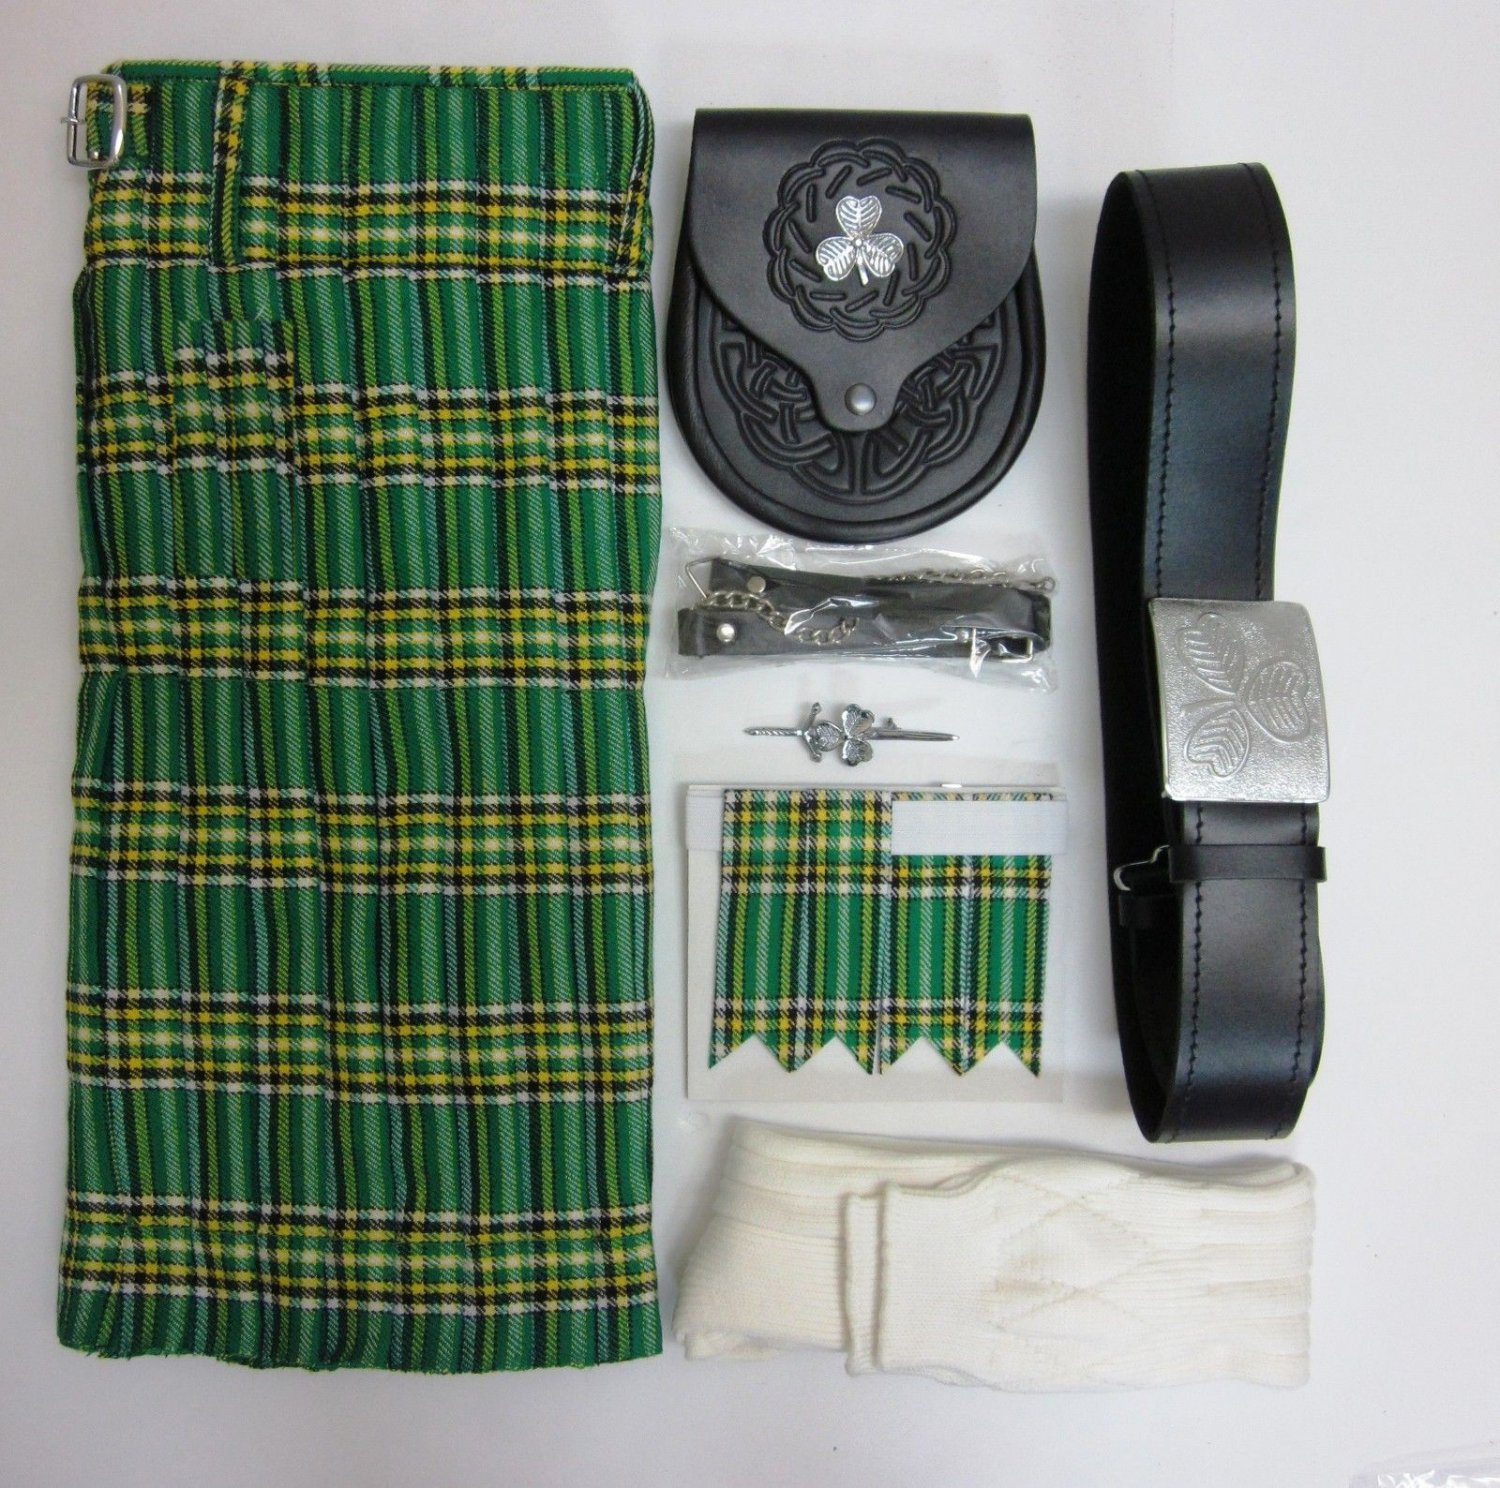 Waist 48 Irish National Tartan Kilt with Sporran Belt Hose and Kilt Pin Flashes